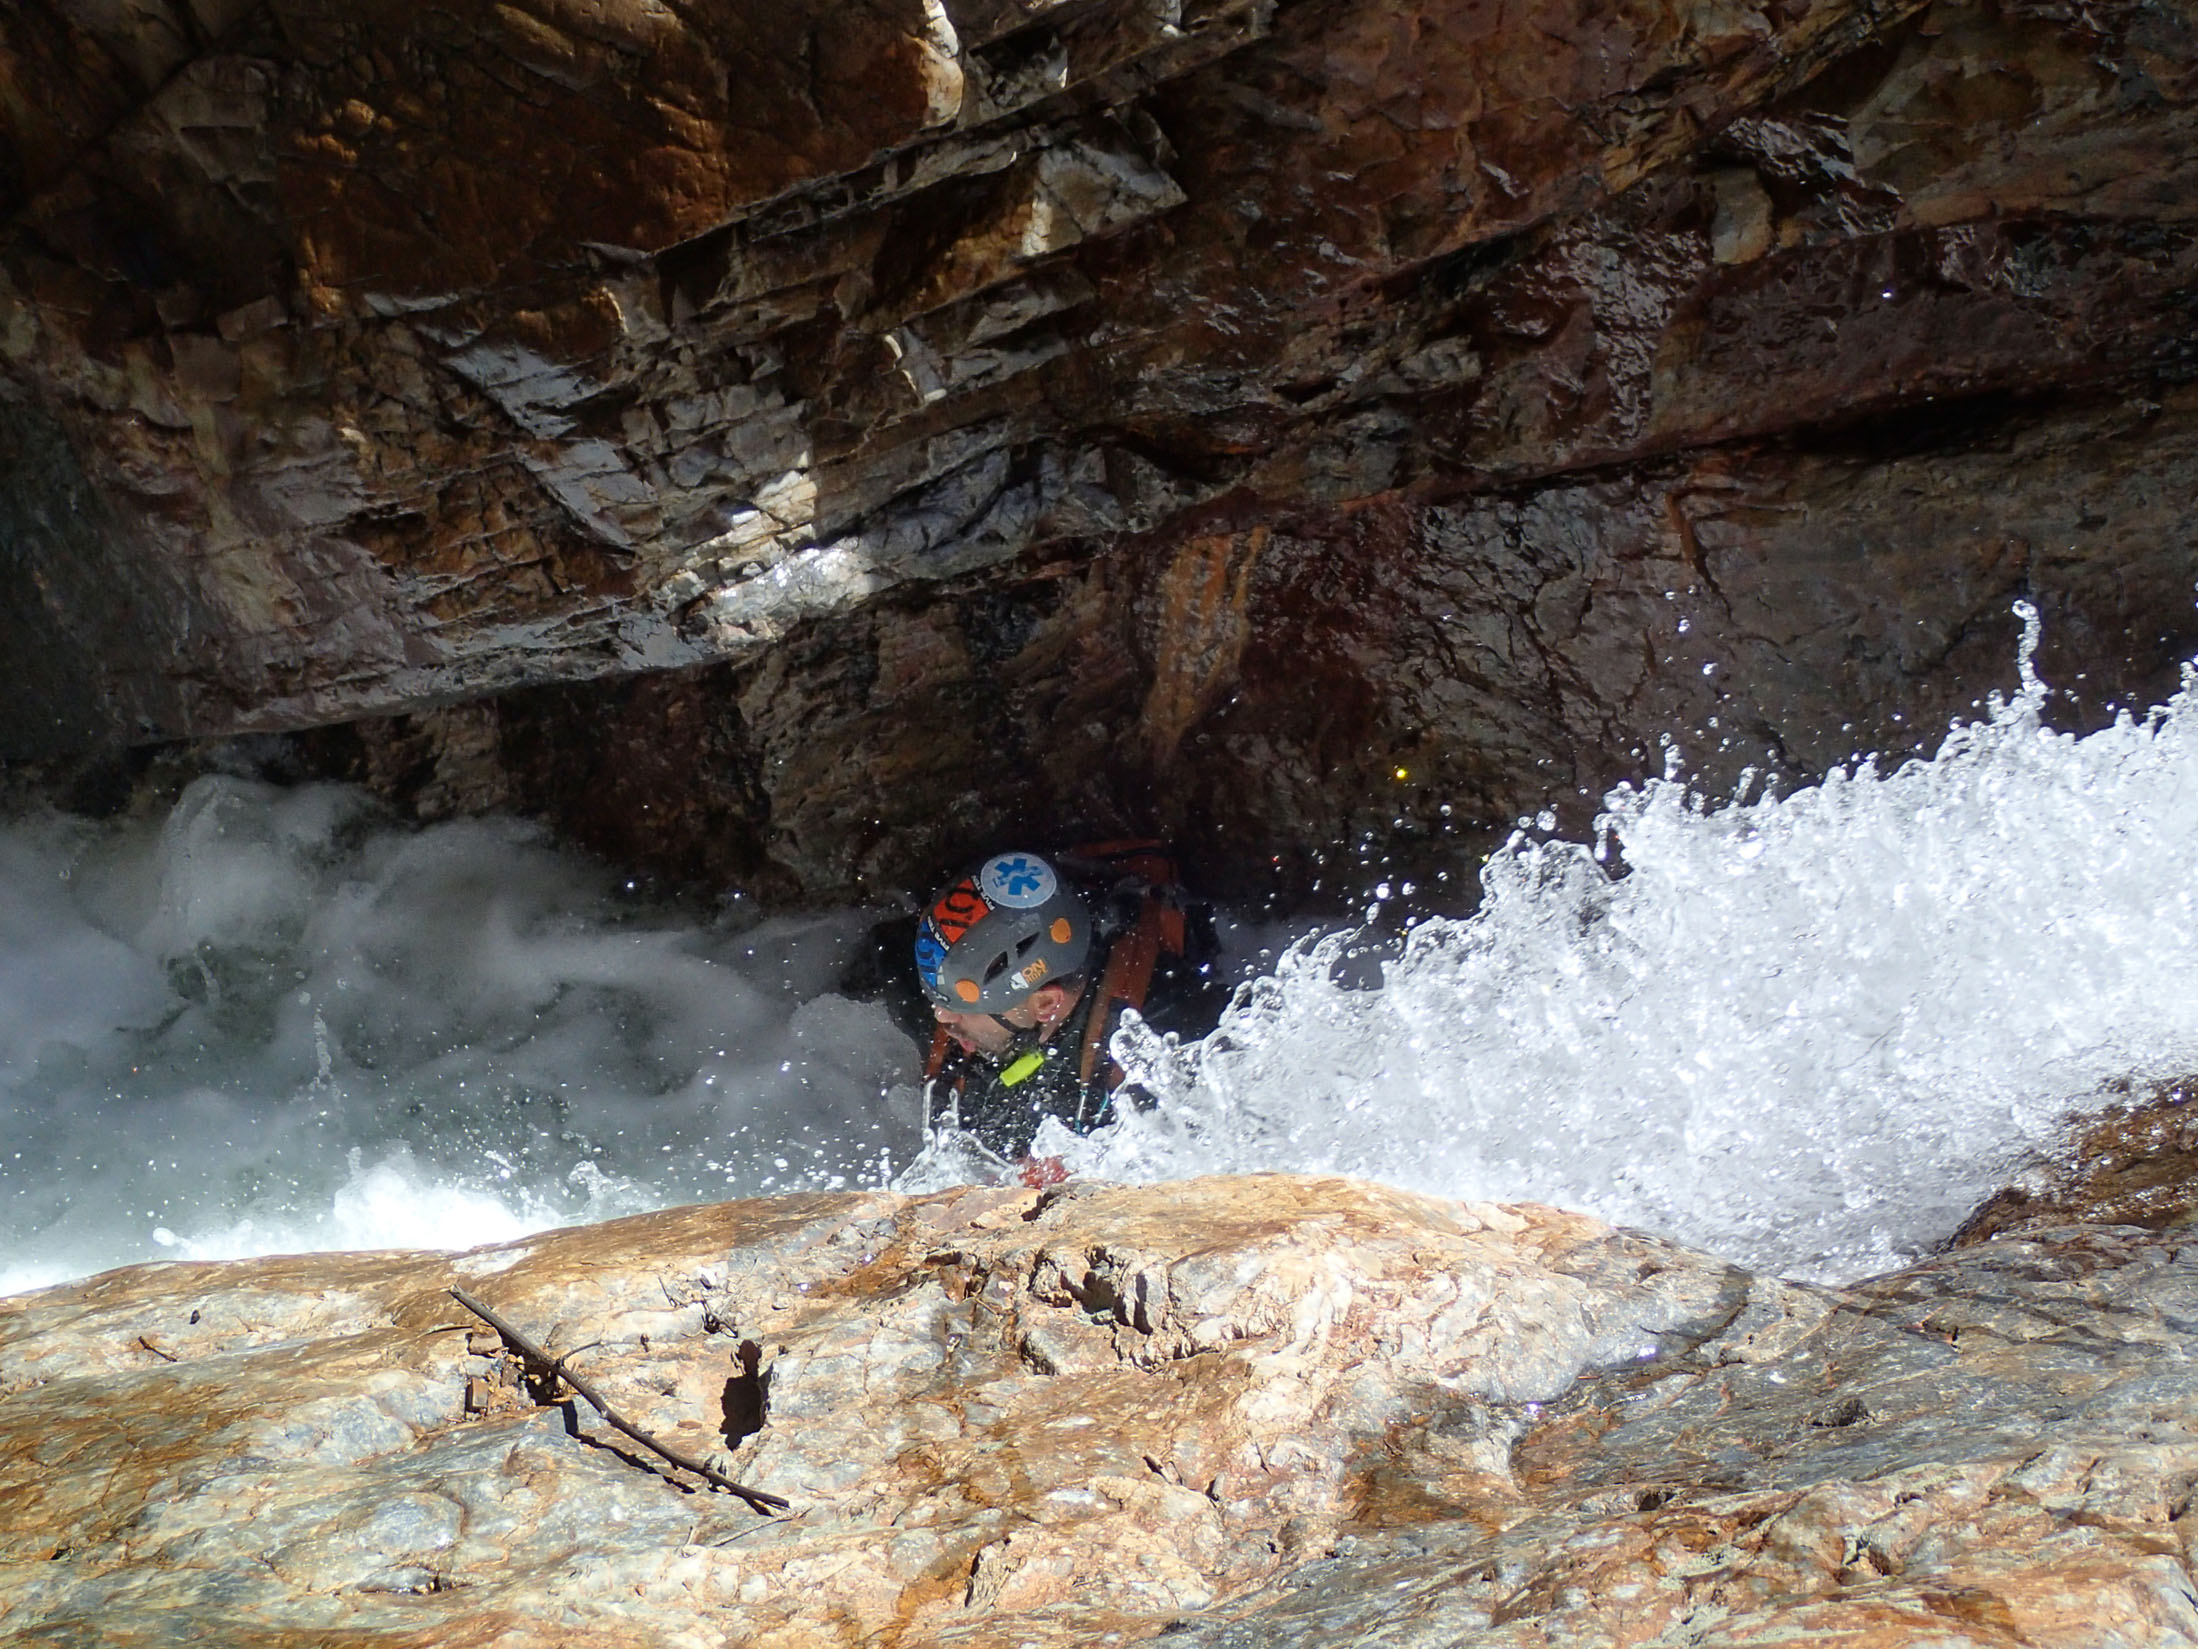 Jeremy riding the flow in Upper Uncompahgre